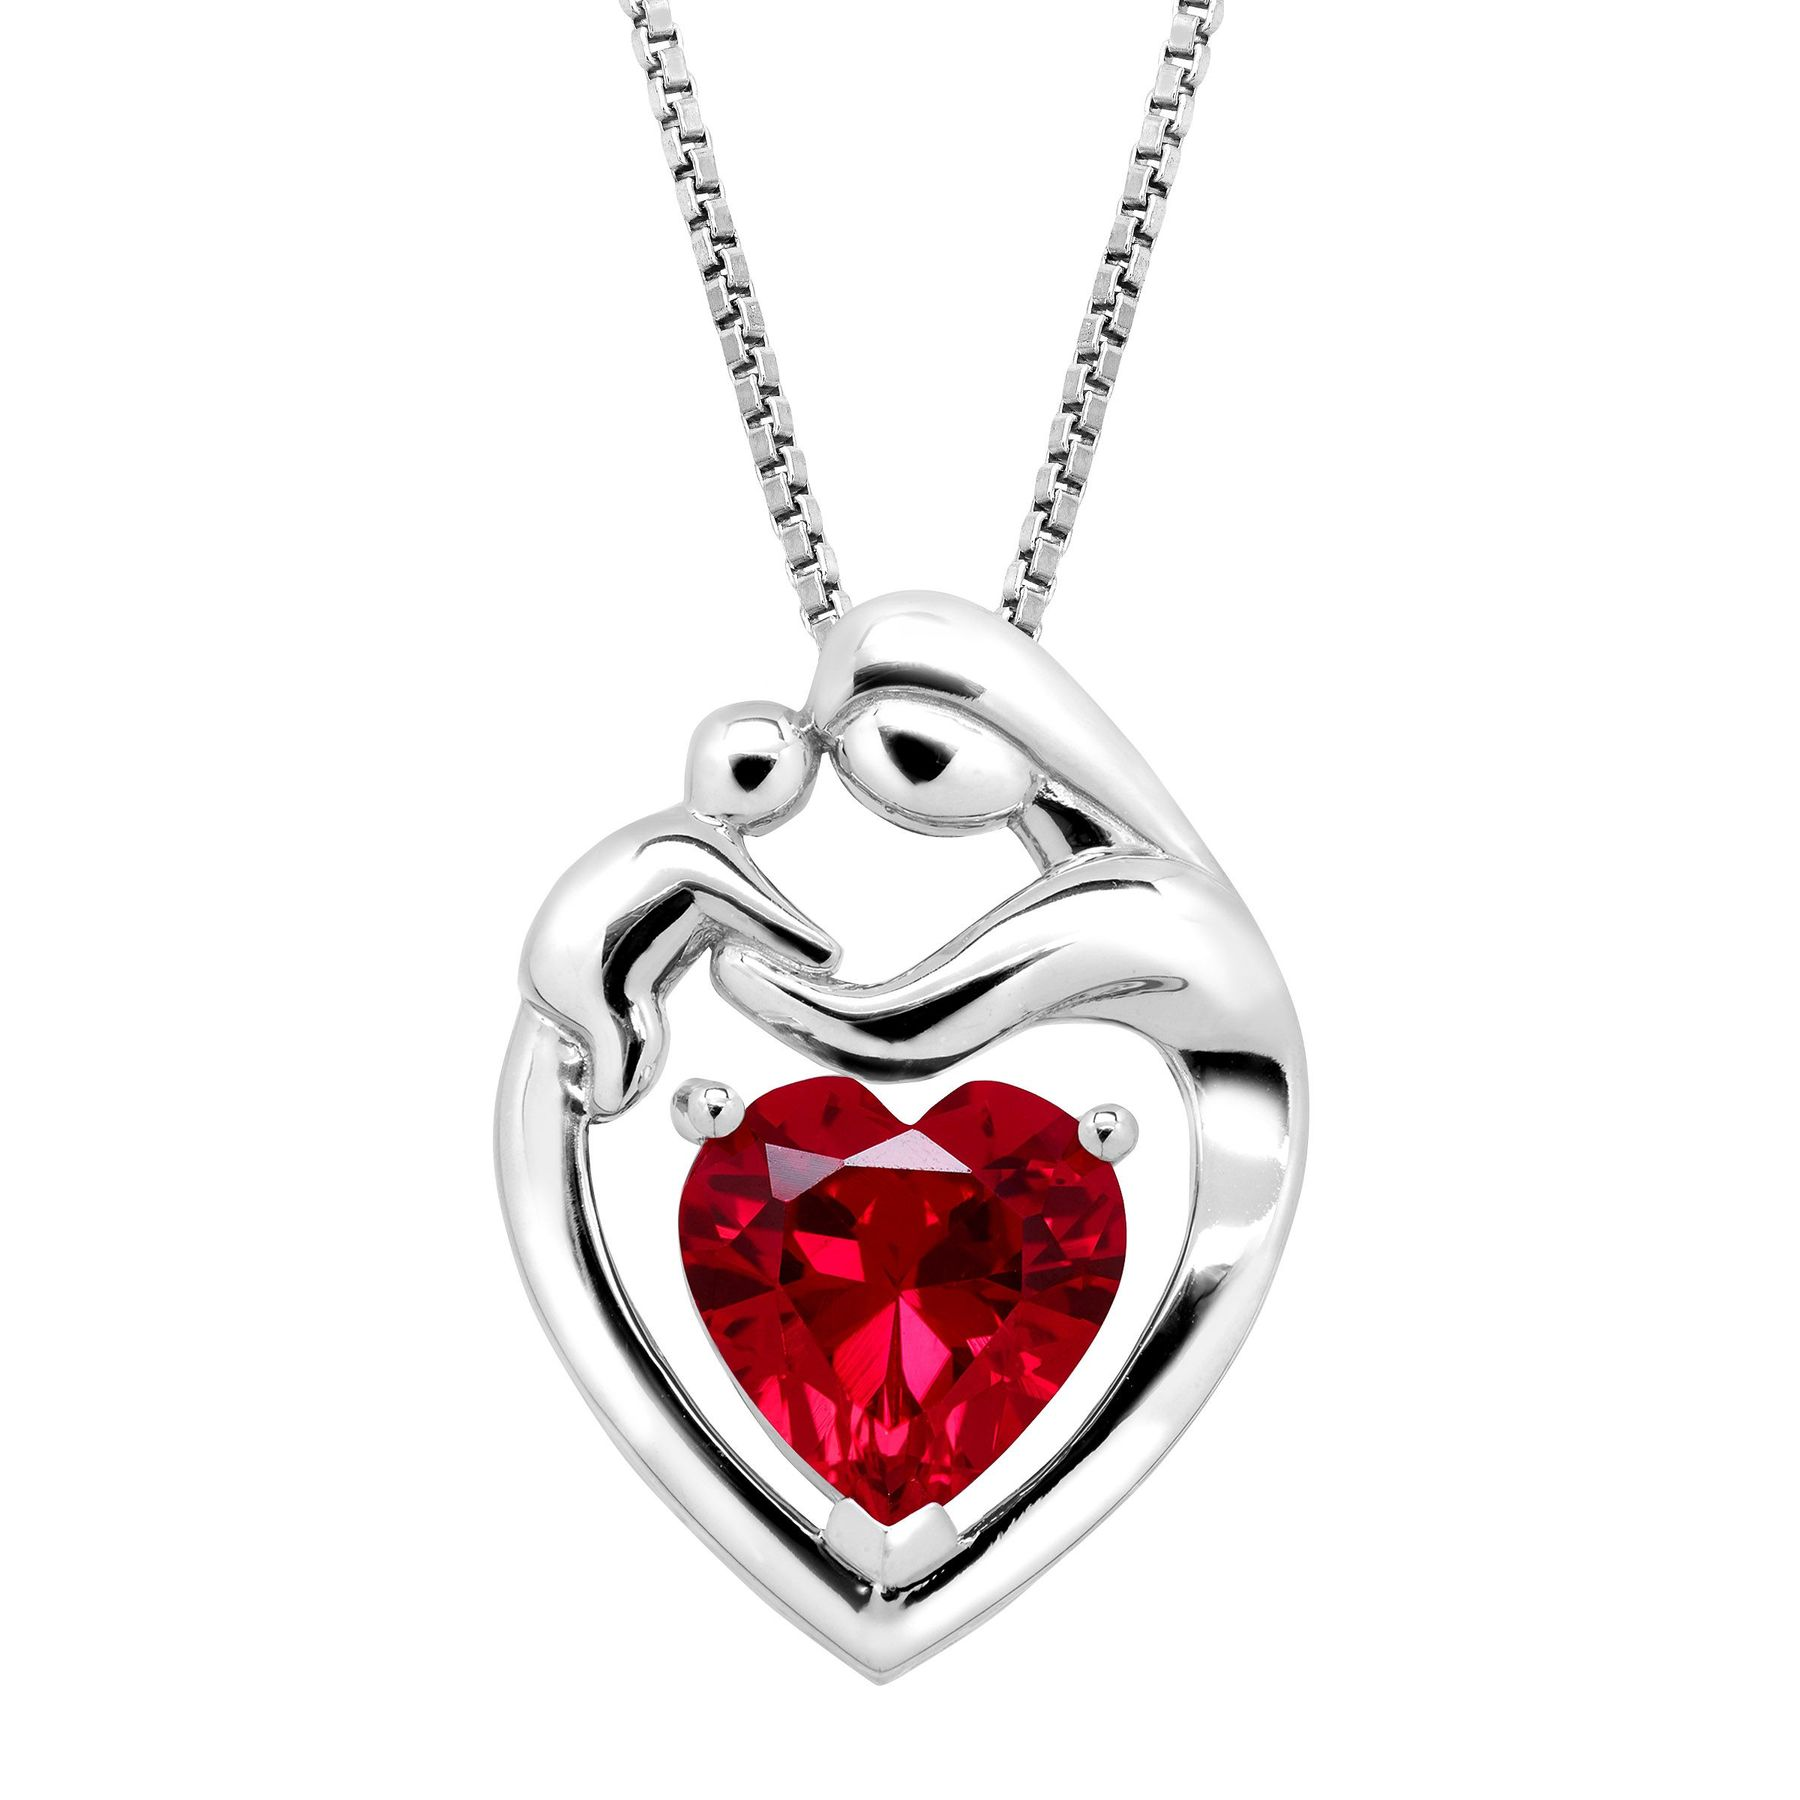 necklace shaped diamond pendant holding inlay itm mother heart child hands